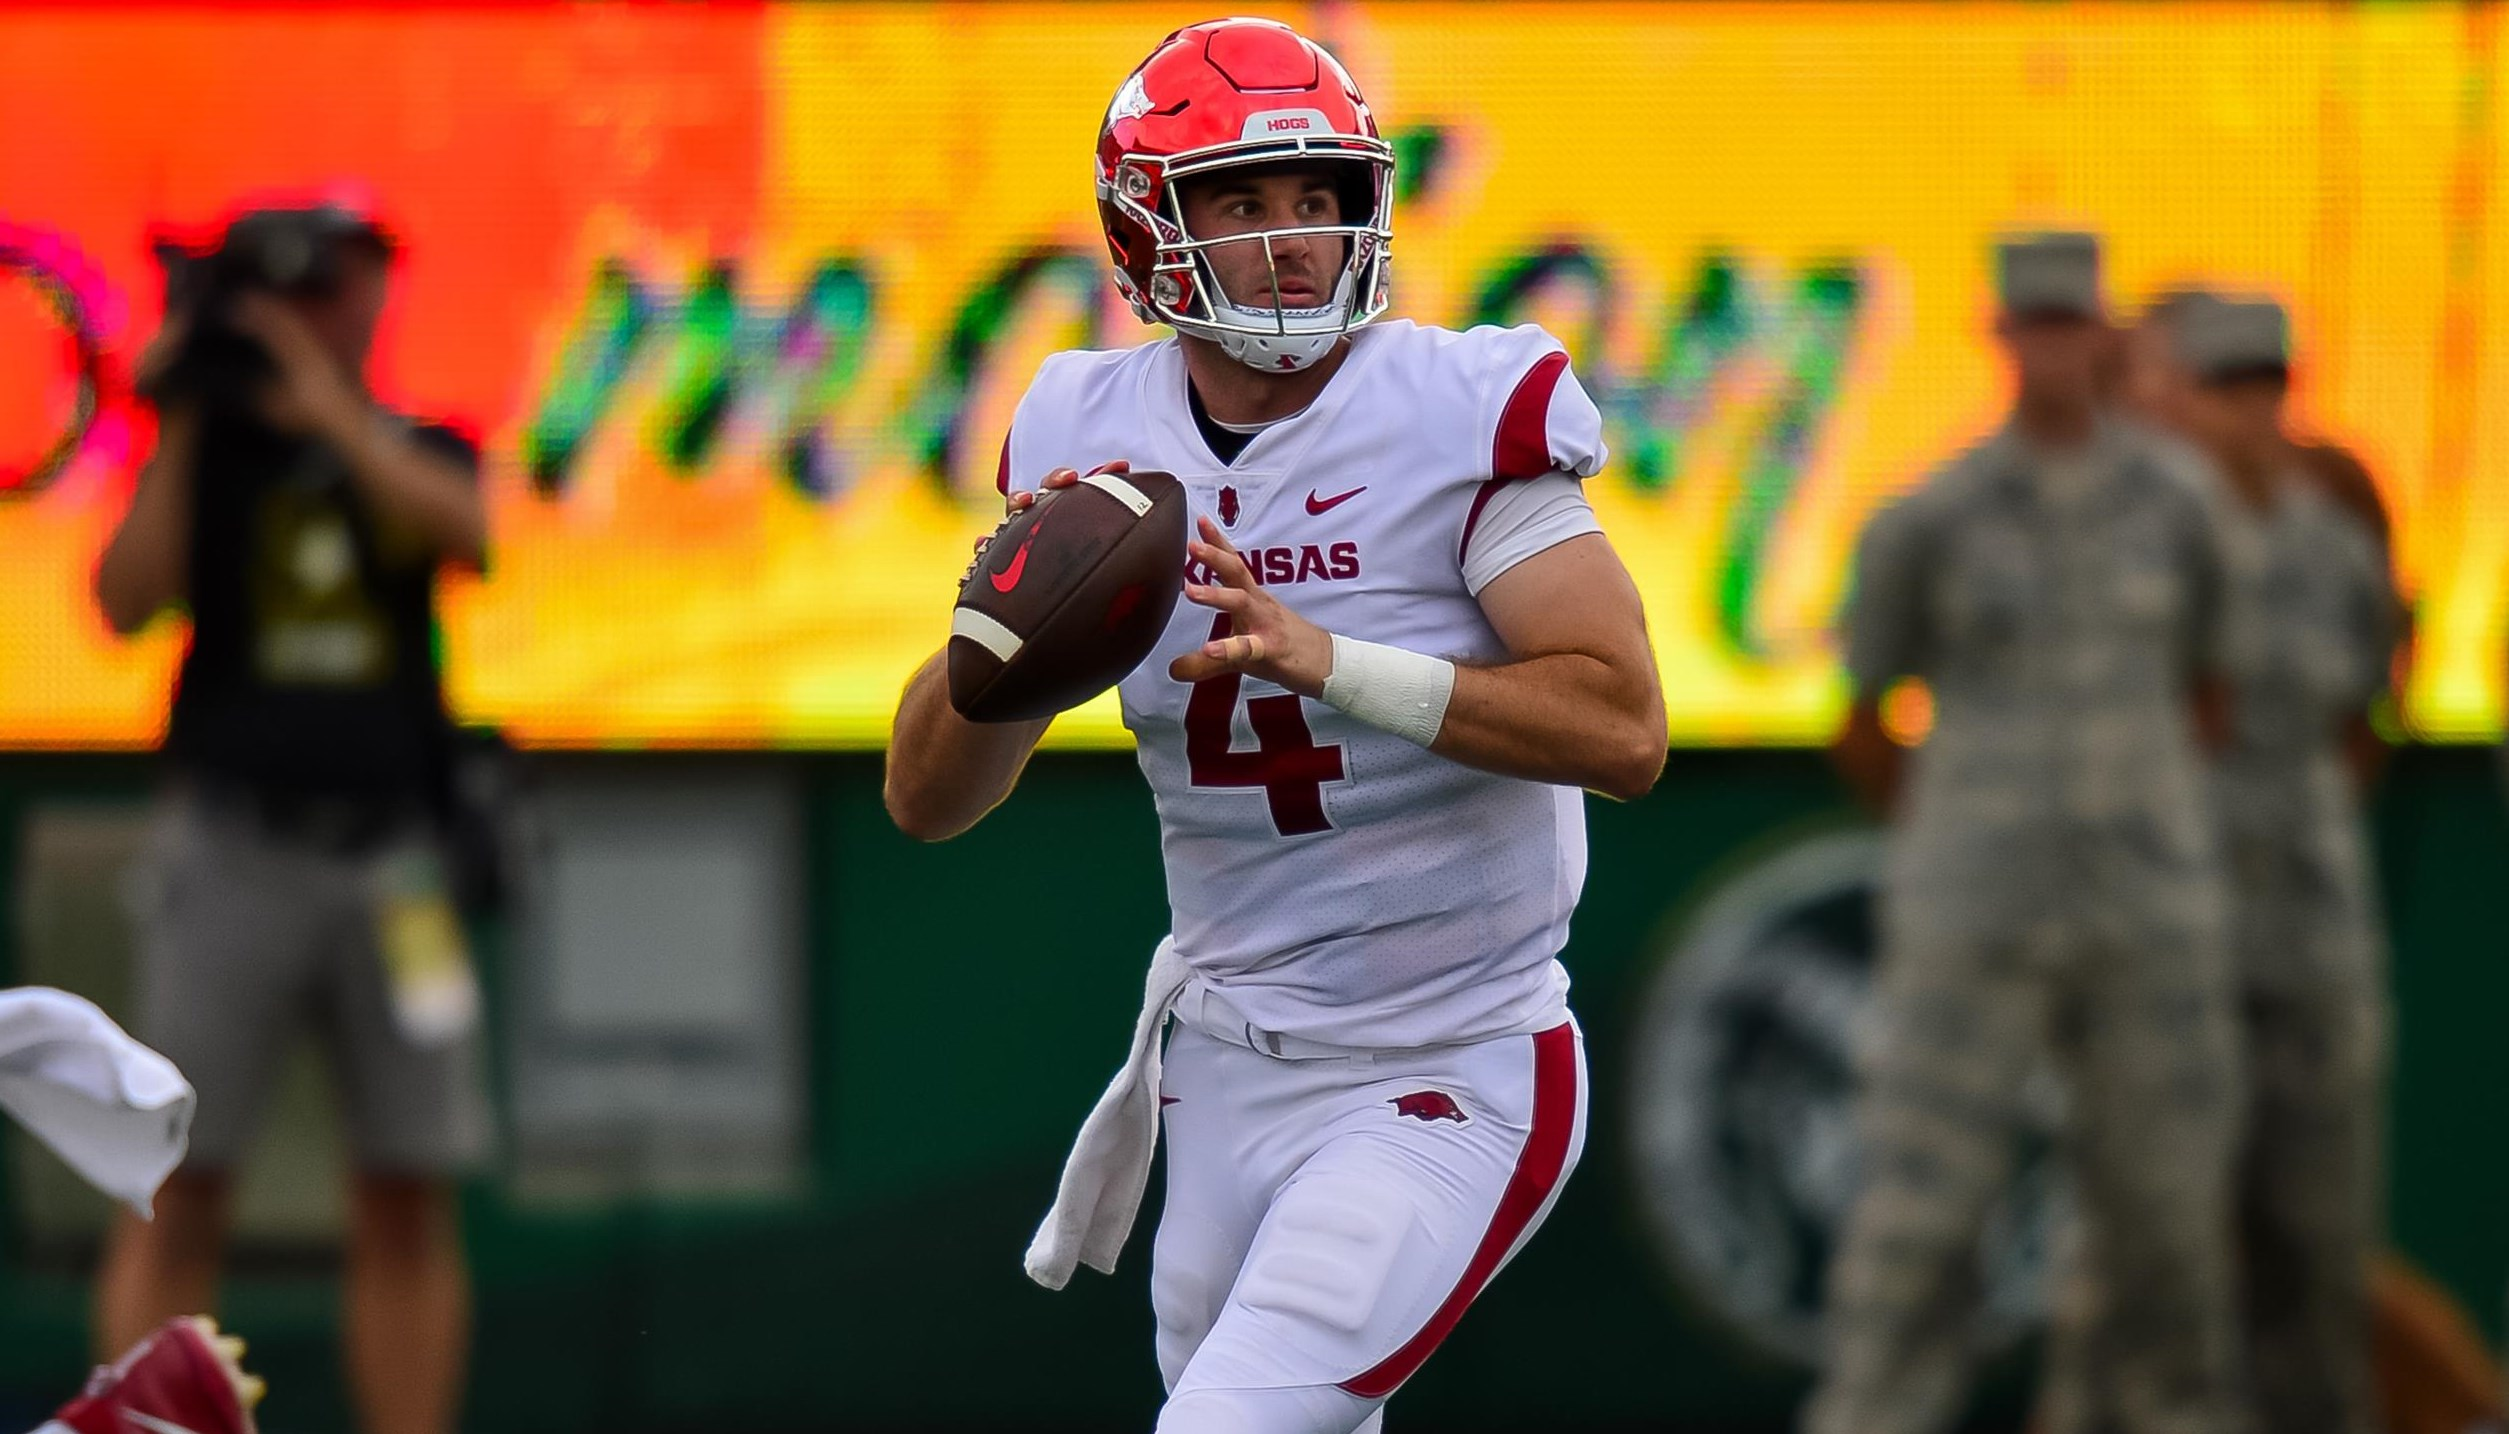 Hilltoppers Add Quarterback Ty Storey to 2019 Roster - Western